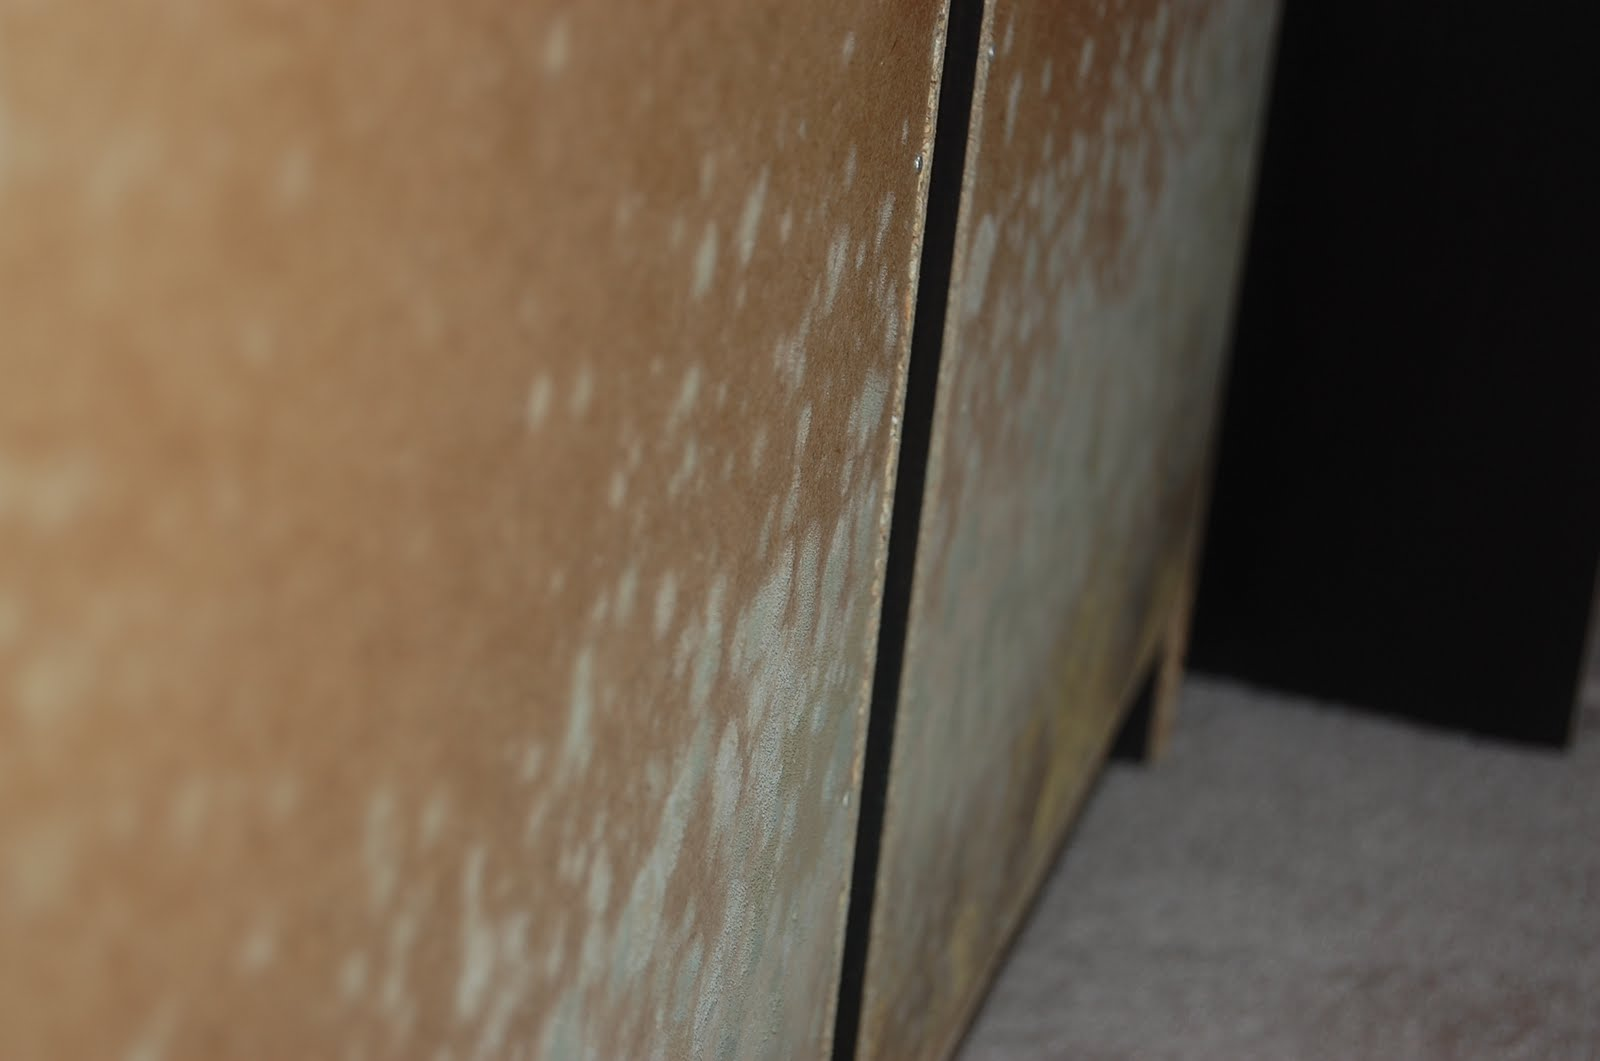 Mold Mold Affected Furniture